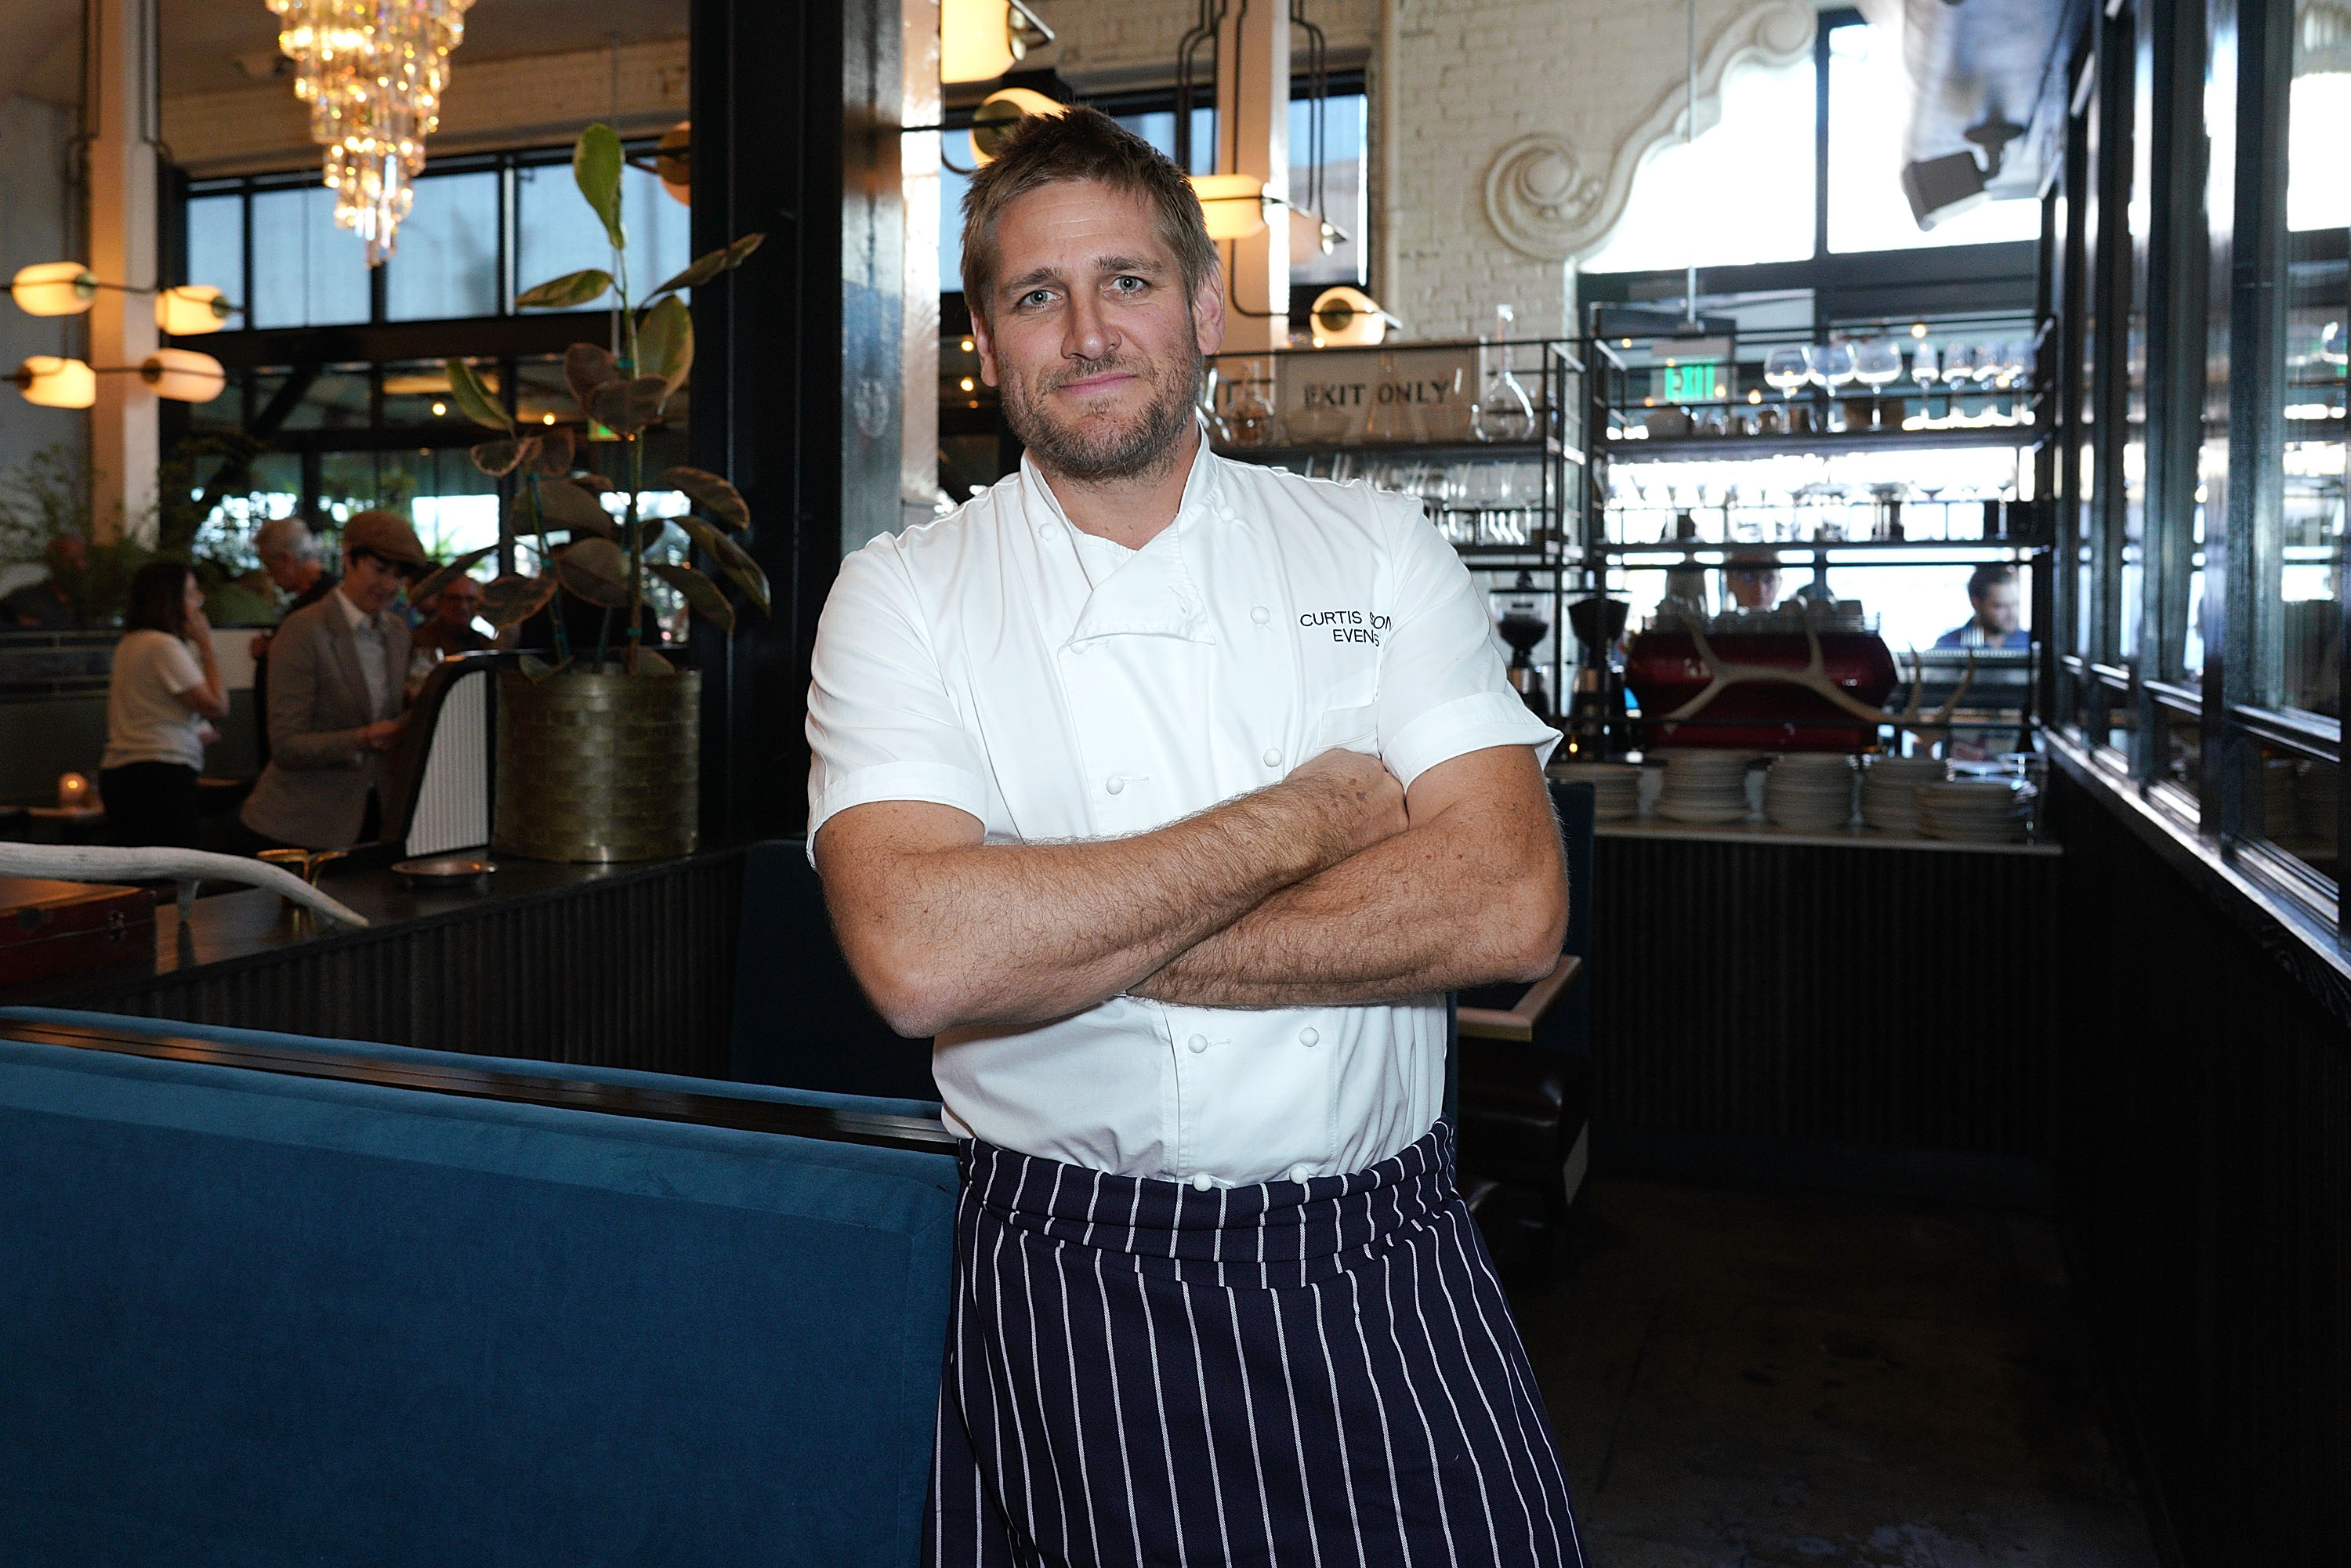 Celebrity Chef Curtis Stone Will Open a Dallas Restaurant With Le Bilboquet's Owner